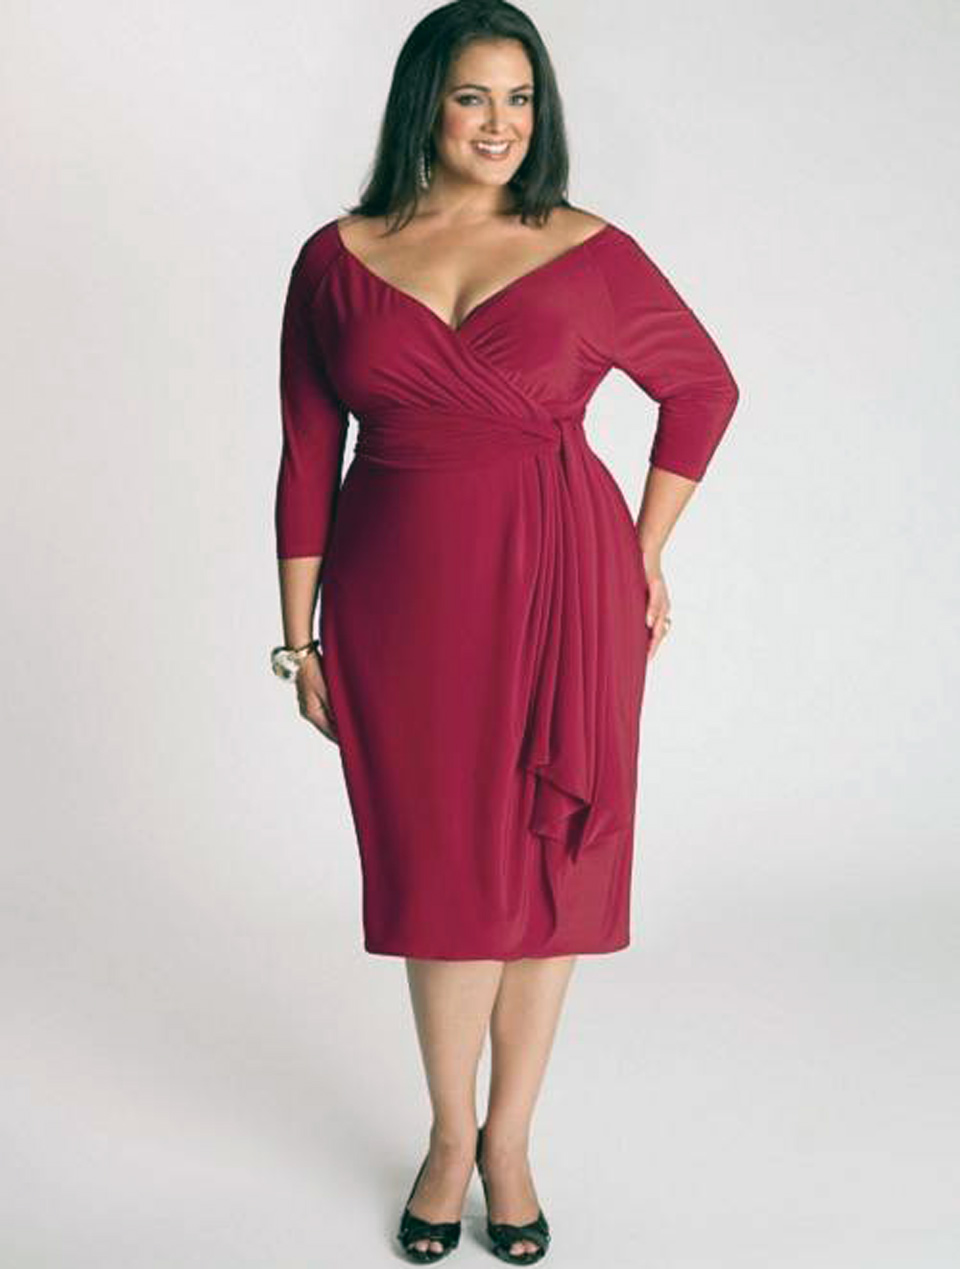 cocktail dresses plus size women macys - inofashionstyle